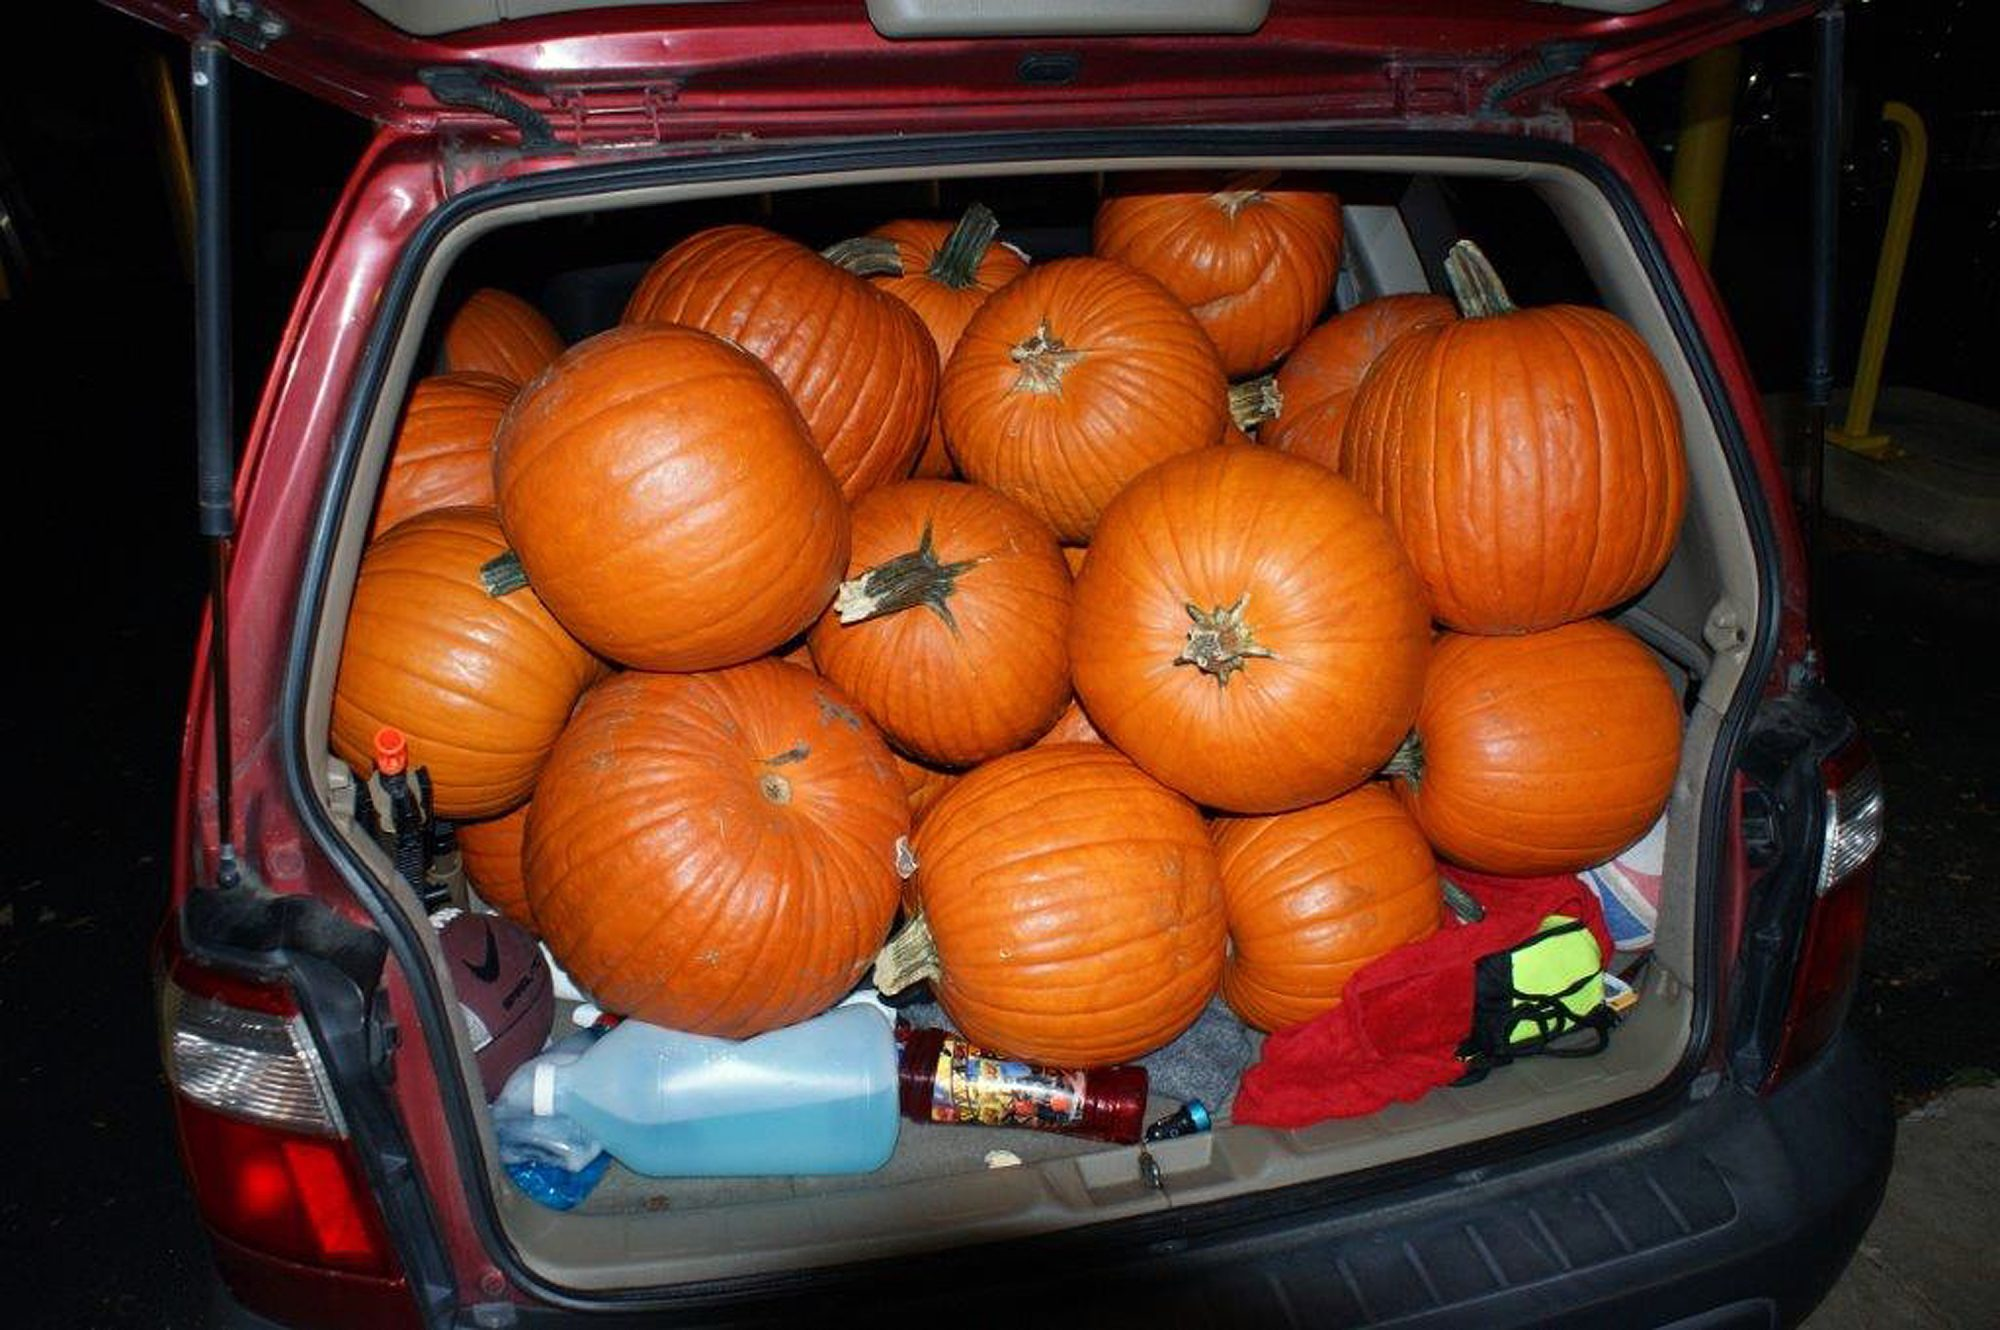 Teens Had 48 Stolen Pumpkins and 1 Gourd Crammed in 'Top-to-Bottom Orange' SUV, Police Say